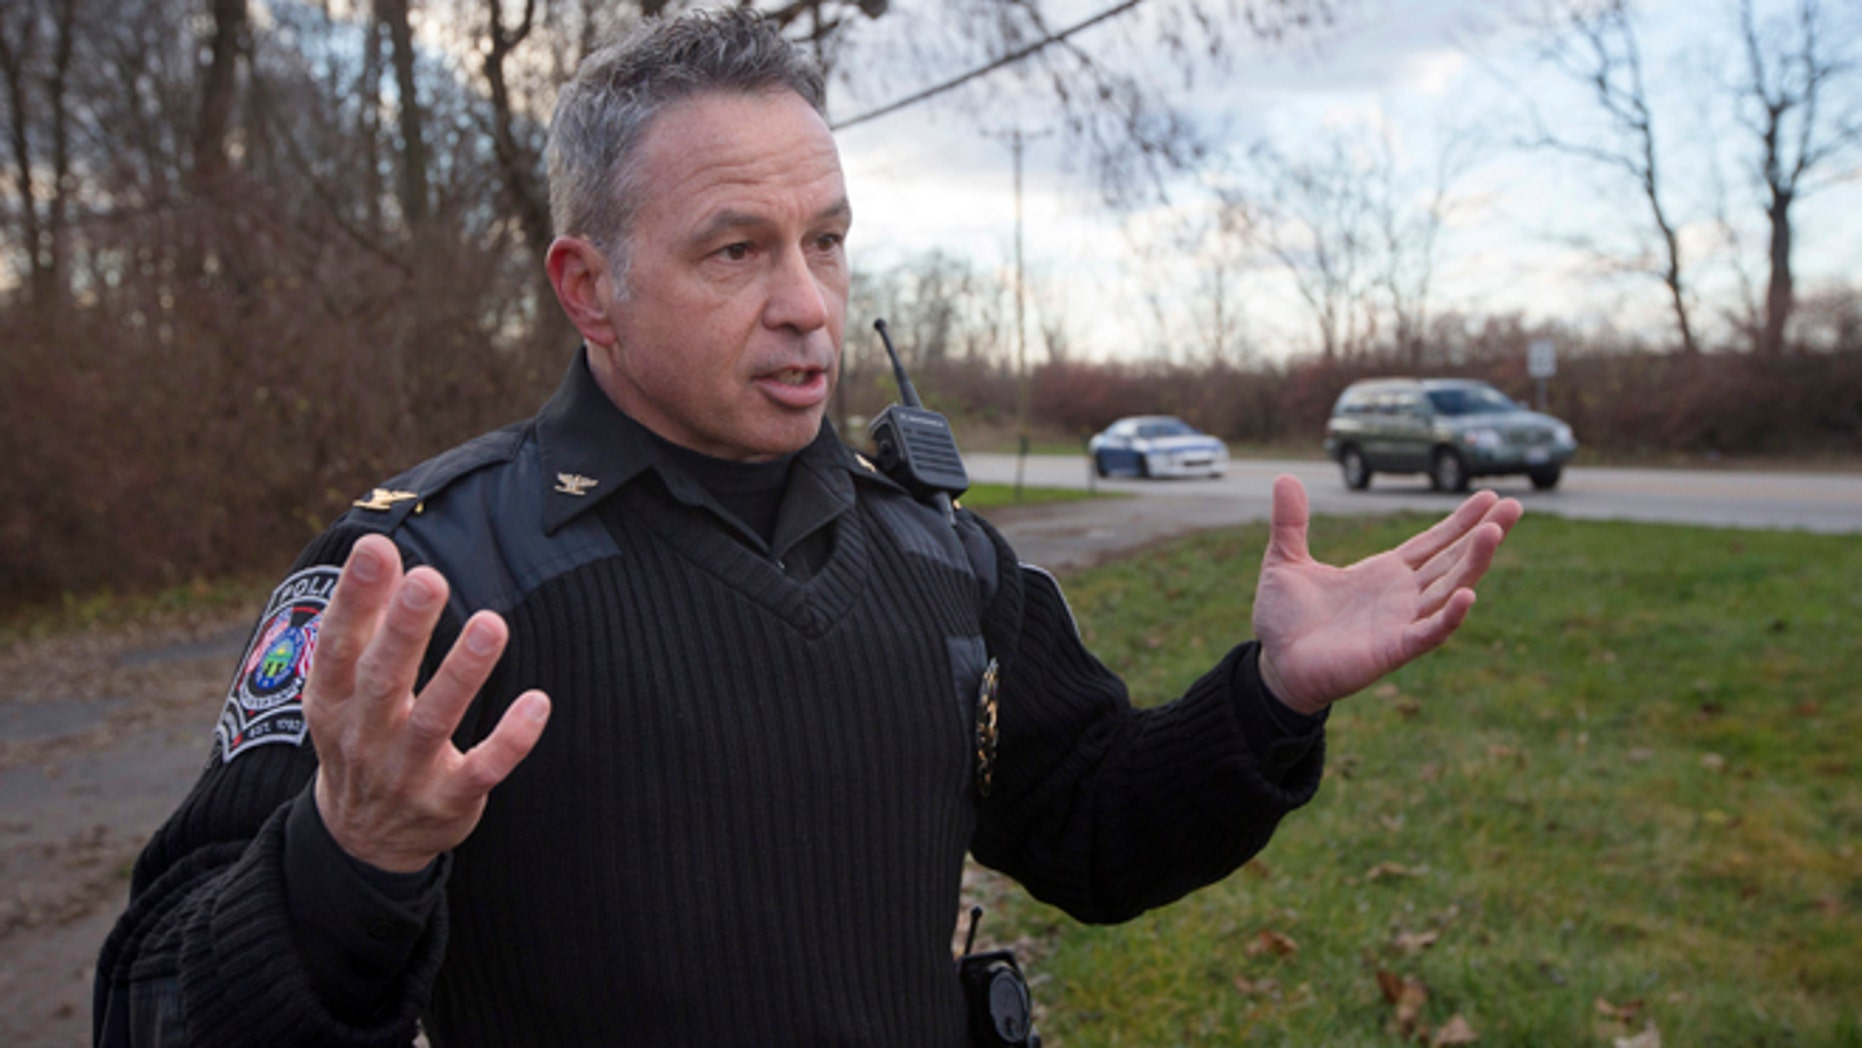 In this Dec. 18, 2015 file photo, the chief of police of the Newtown, Ohio, Police Department, Thomas Synan Jr., speaks to reporters at the scene of a traffic stop arrest in Newtown, Ohio.